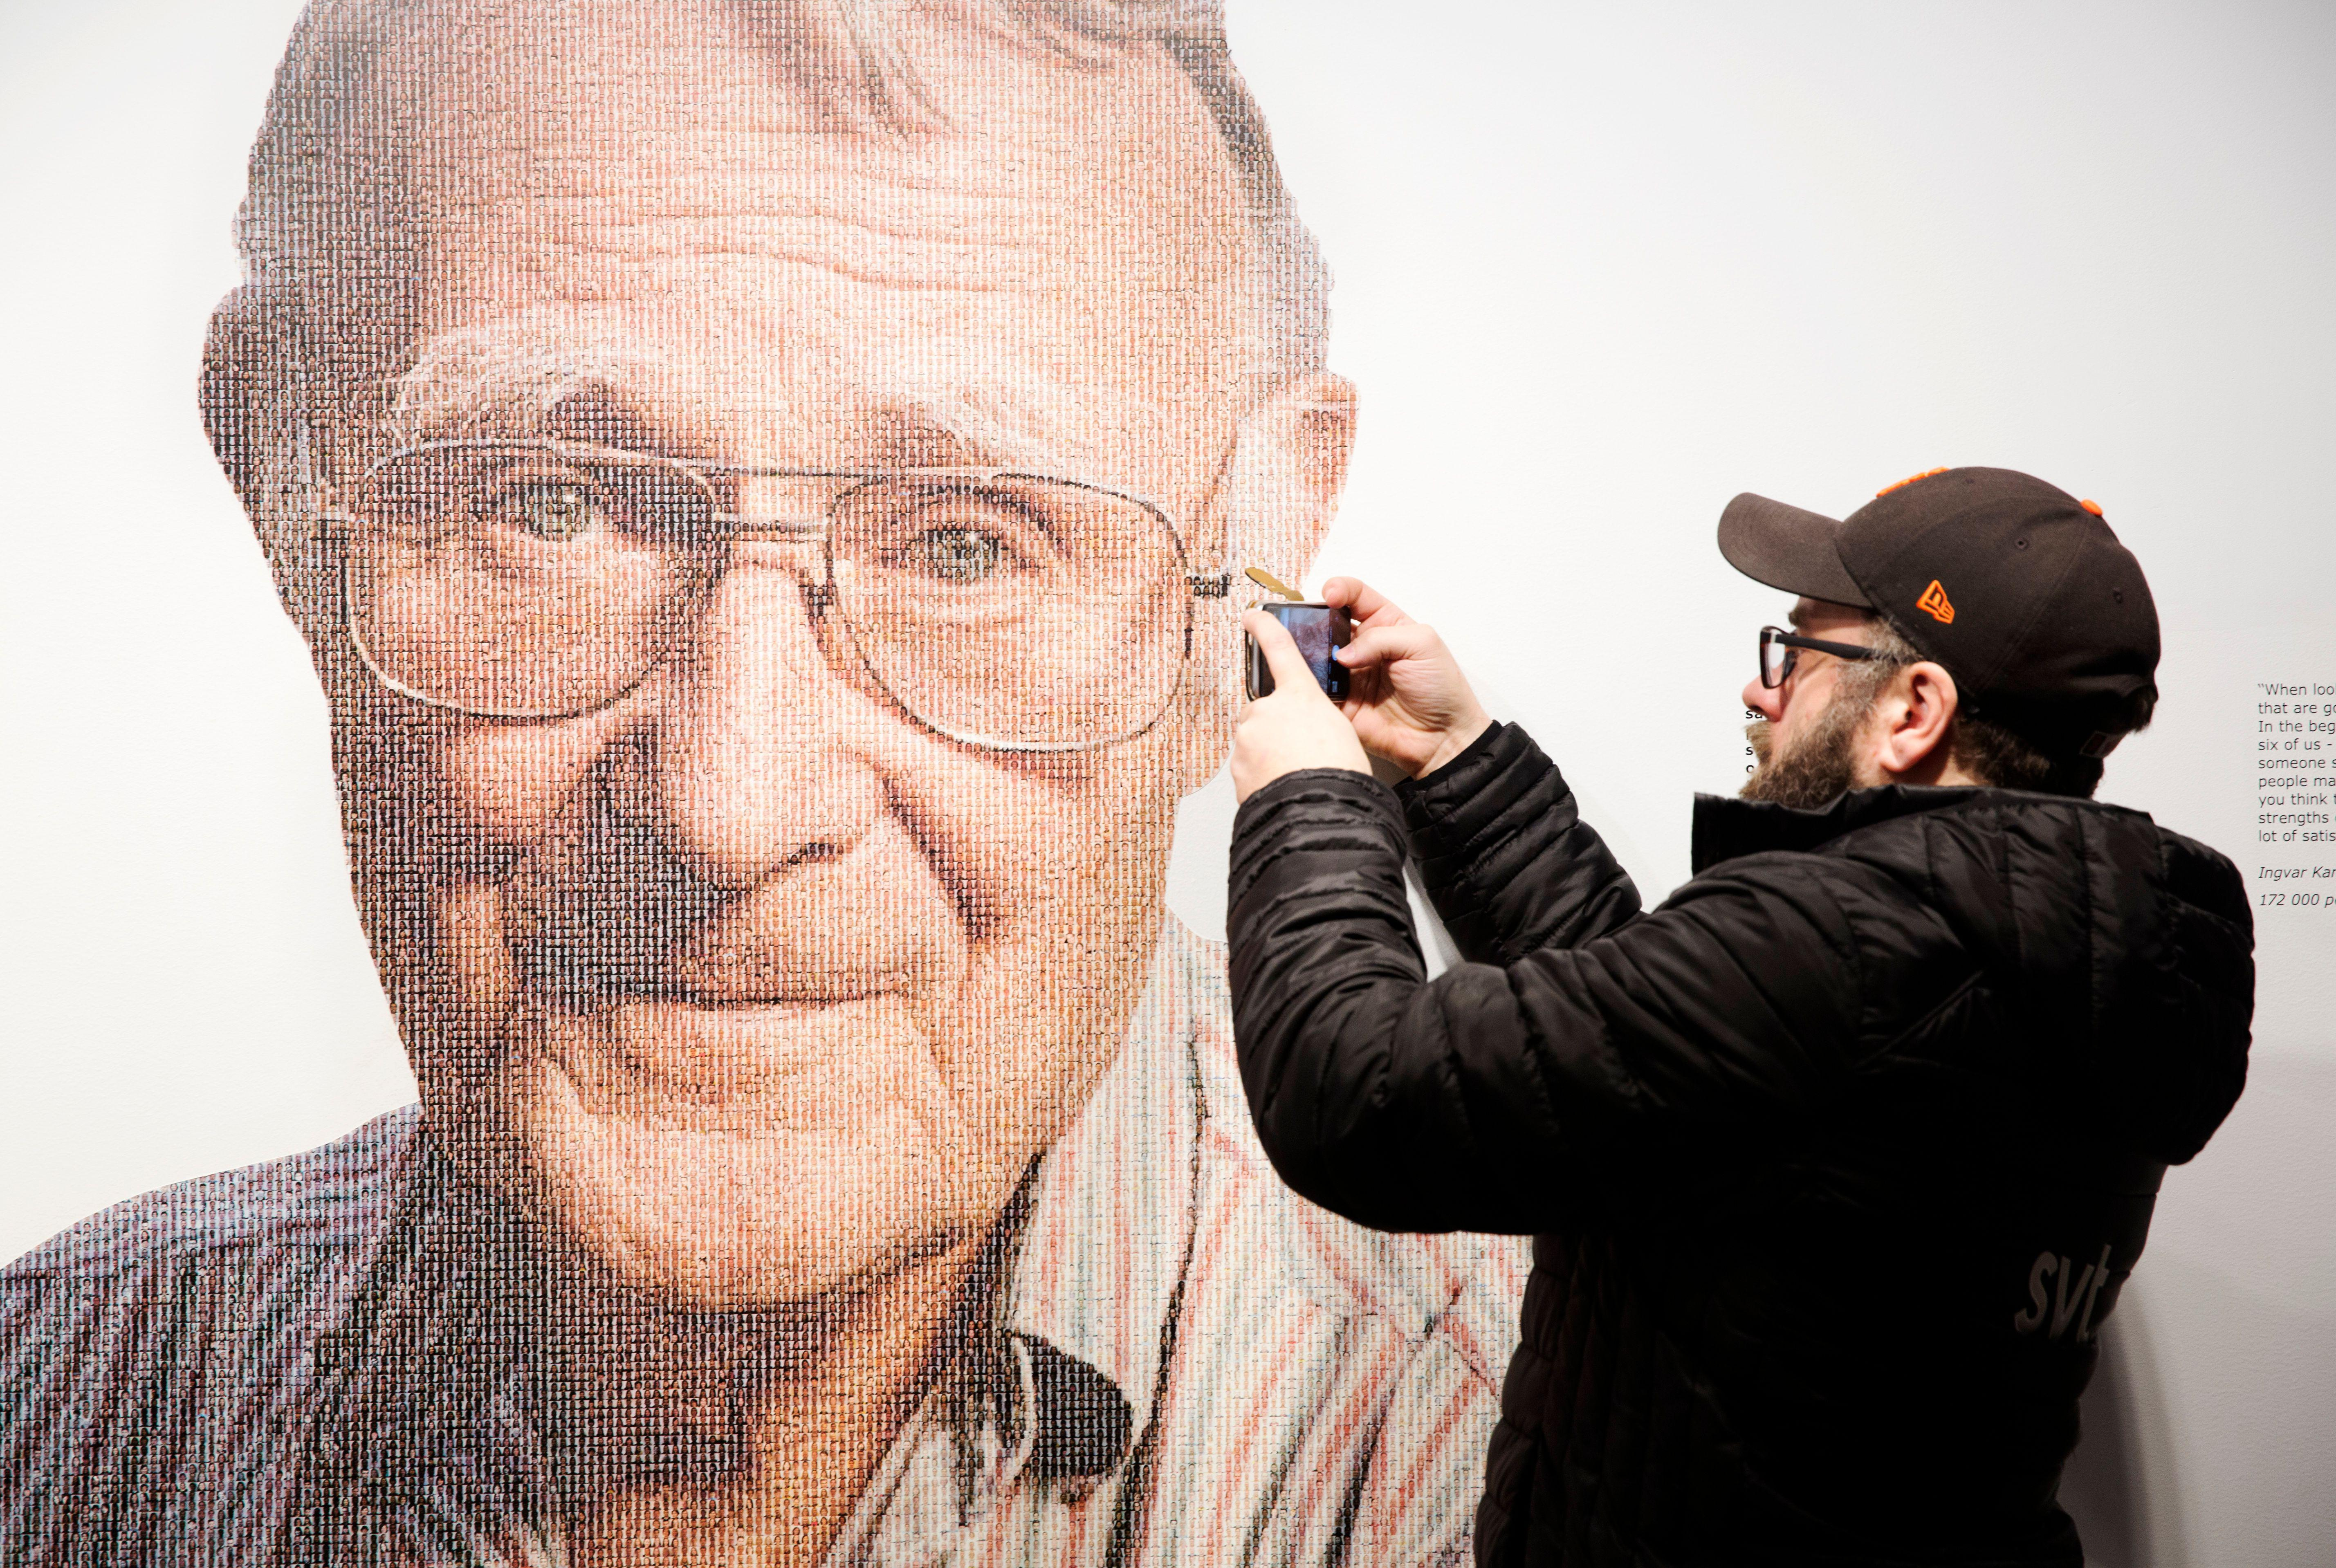 A visitor takes a mobile photo of a picture of Ingvar Kamprad, founder of Swedish multinational furniture retailer IKEA, at the IKEA museum in Almhult, Sweden, on January 28, 2018. Ingvar Kamprad, the enigmatic founder of Swedish furniture giant IKEA, died aged 91 on Sunday, the company said.